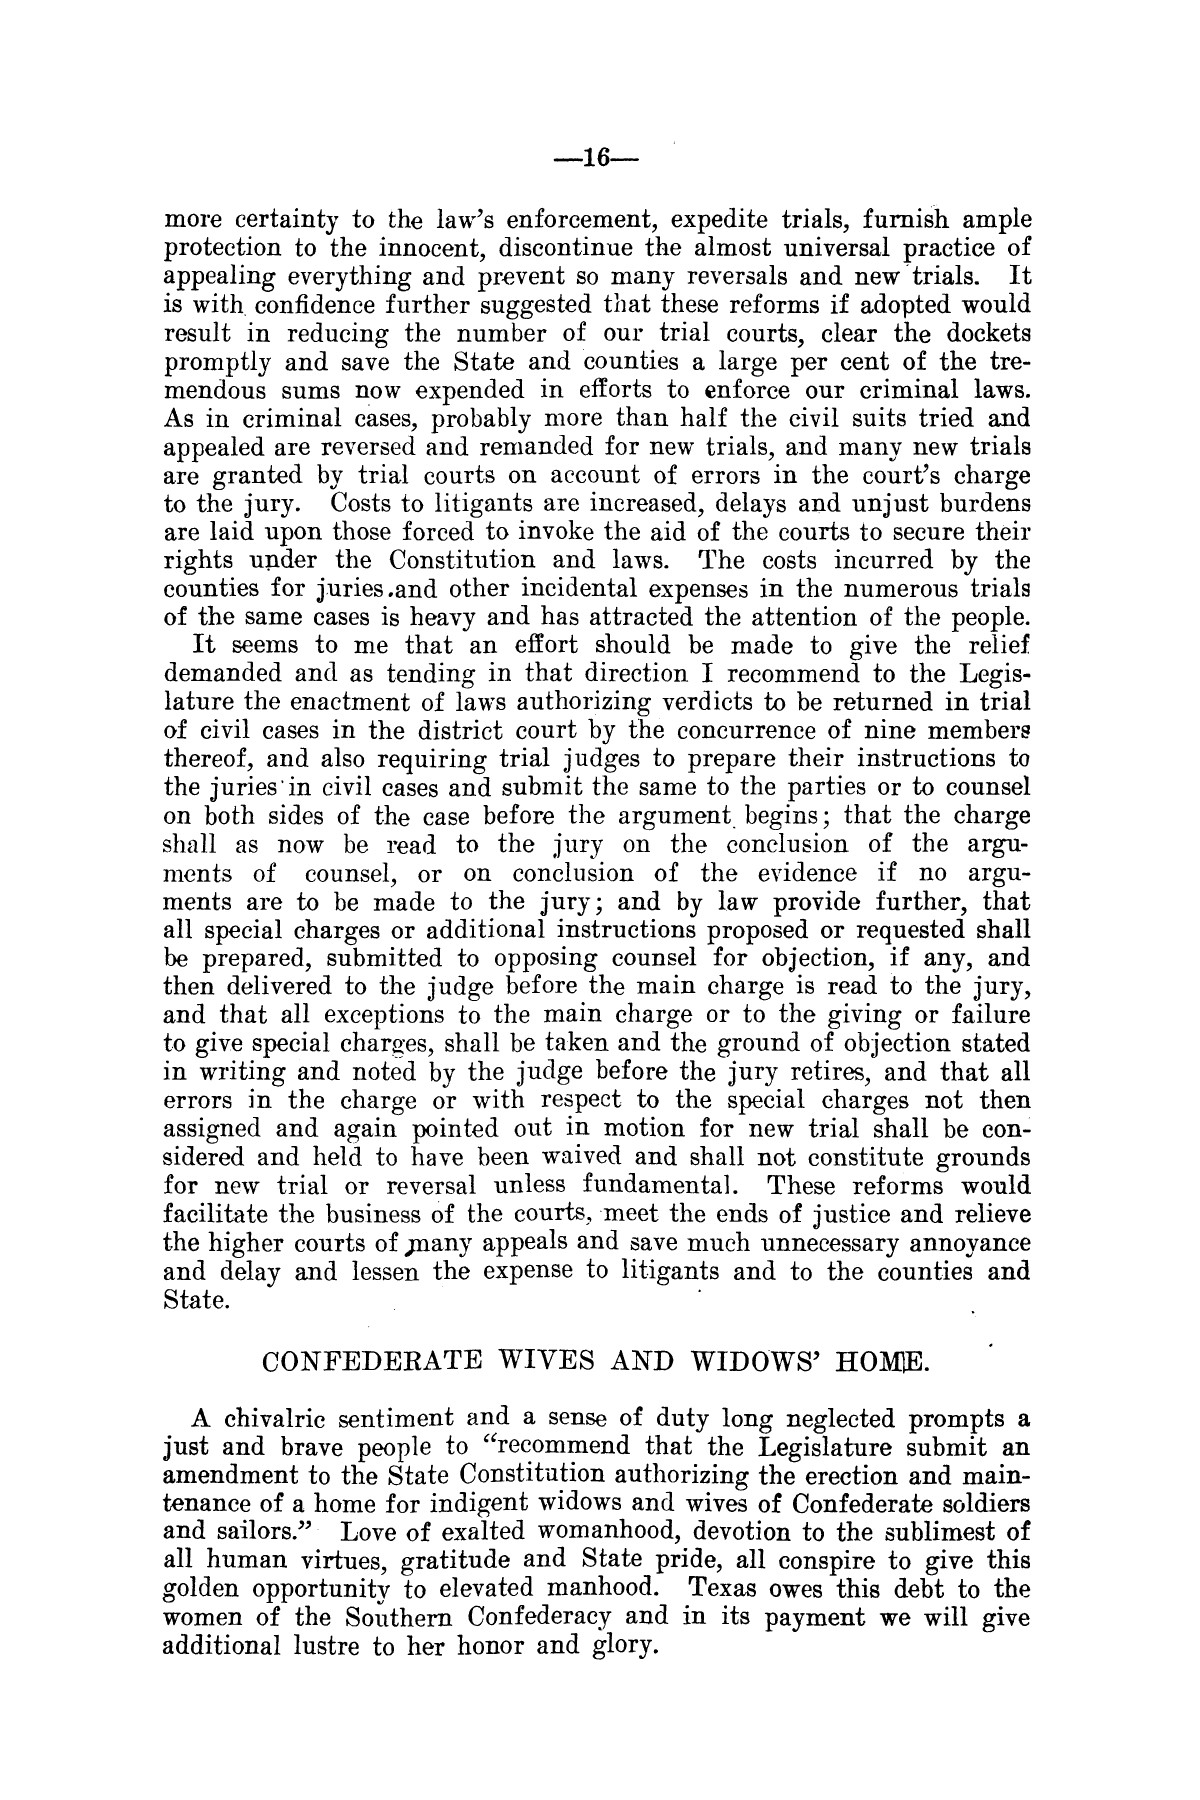 Message of Governor T.M. Campbell to the thirtieth legislature of Texas, to which is appended the State Democratic Platform adopted at Dallas, Texas, August 13, 1906.                                                                                                      [Sequence #]: 16 of 27